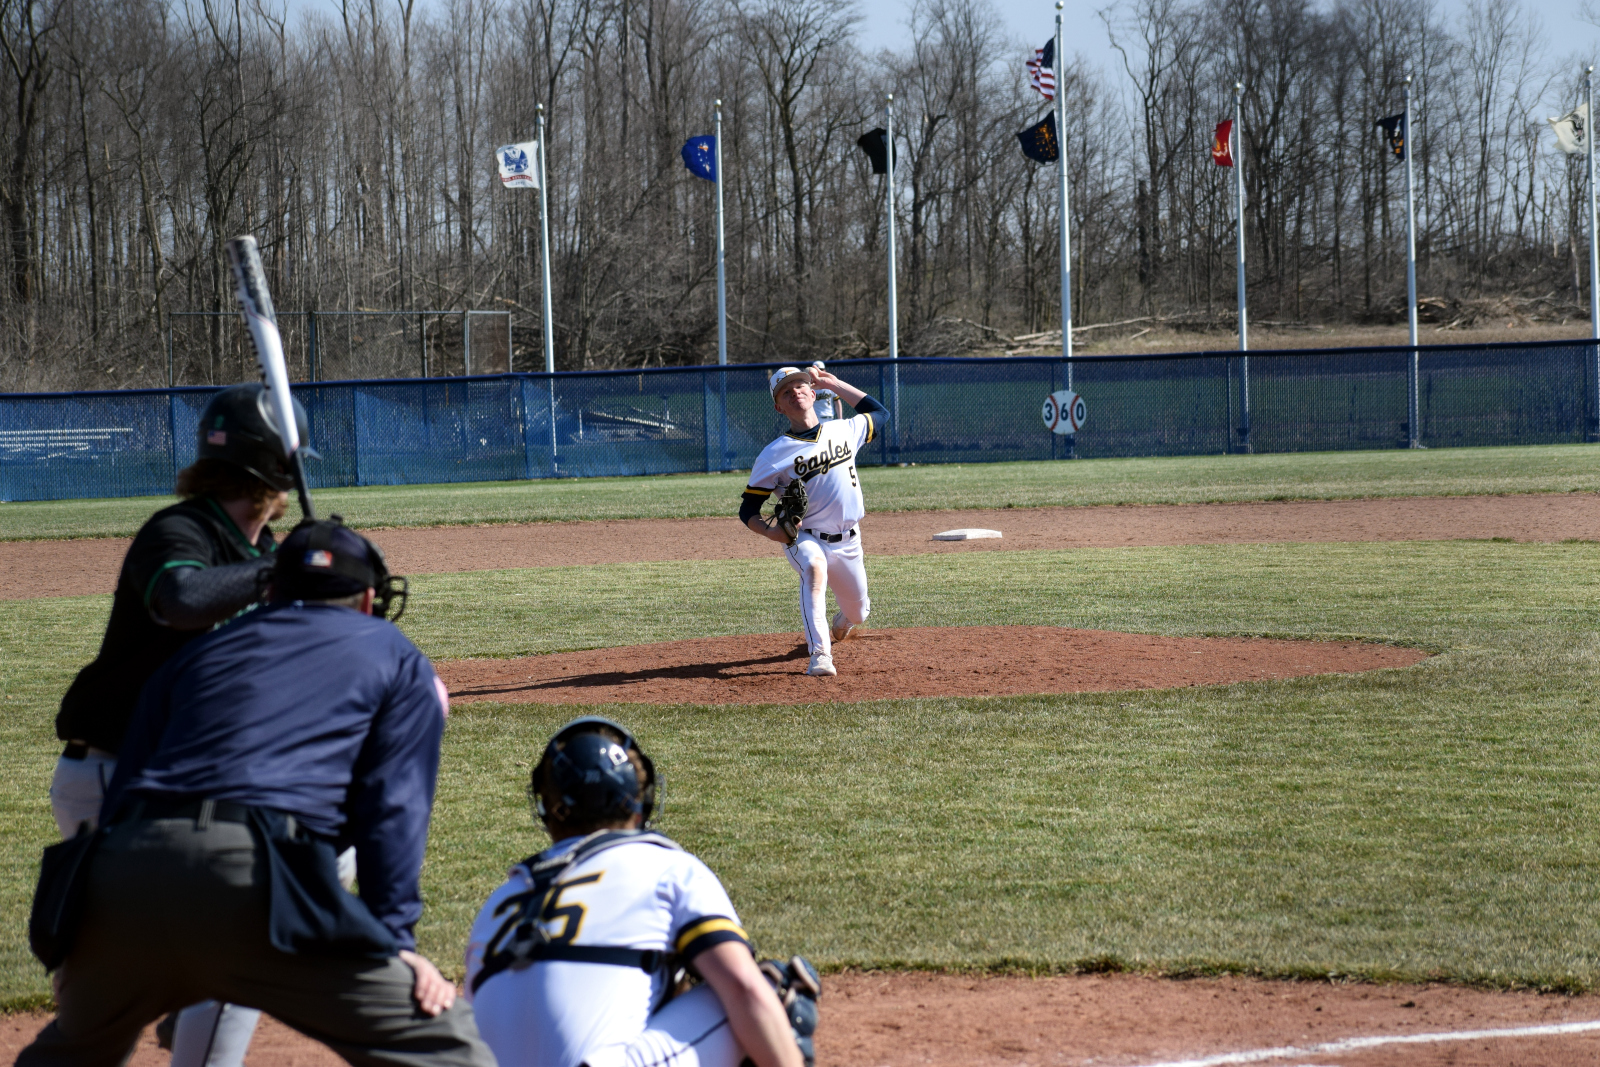 Pitch at first game